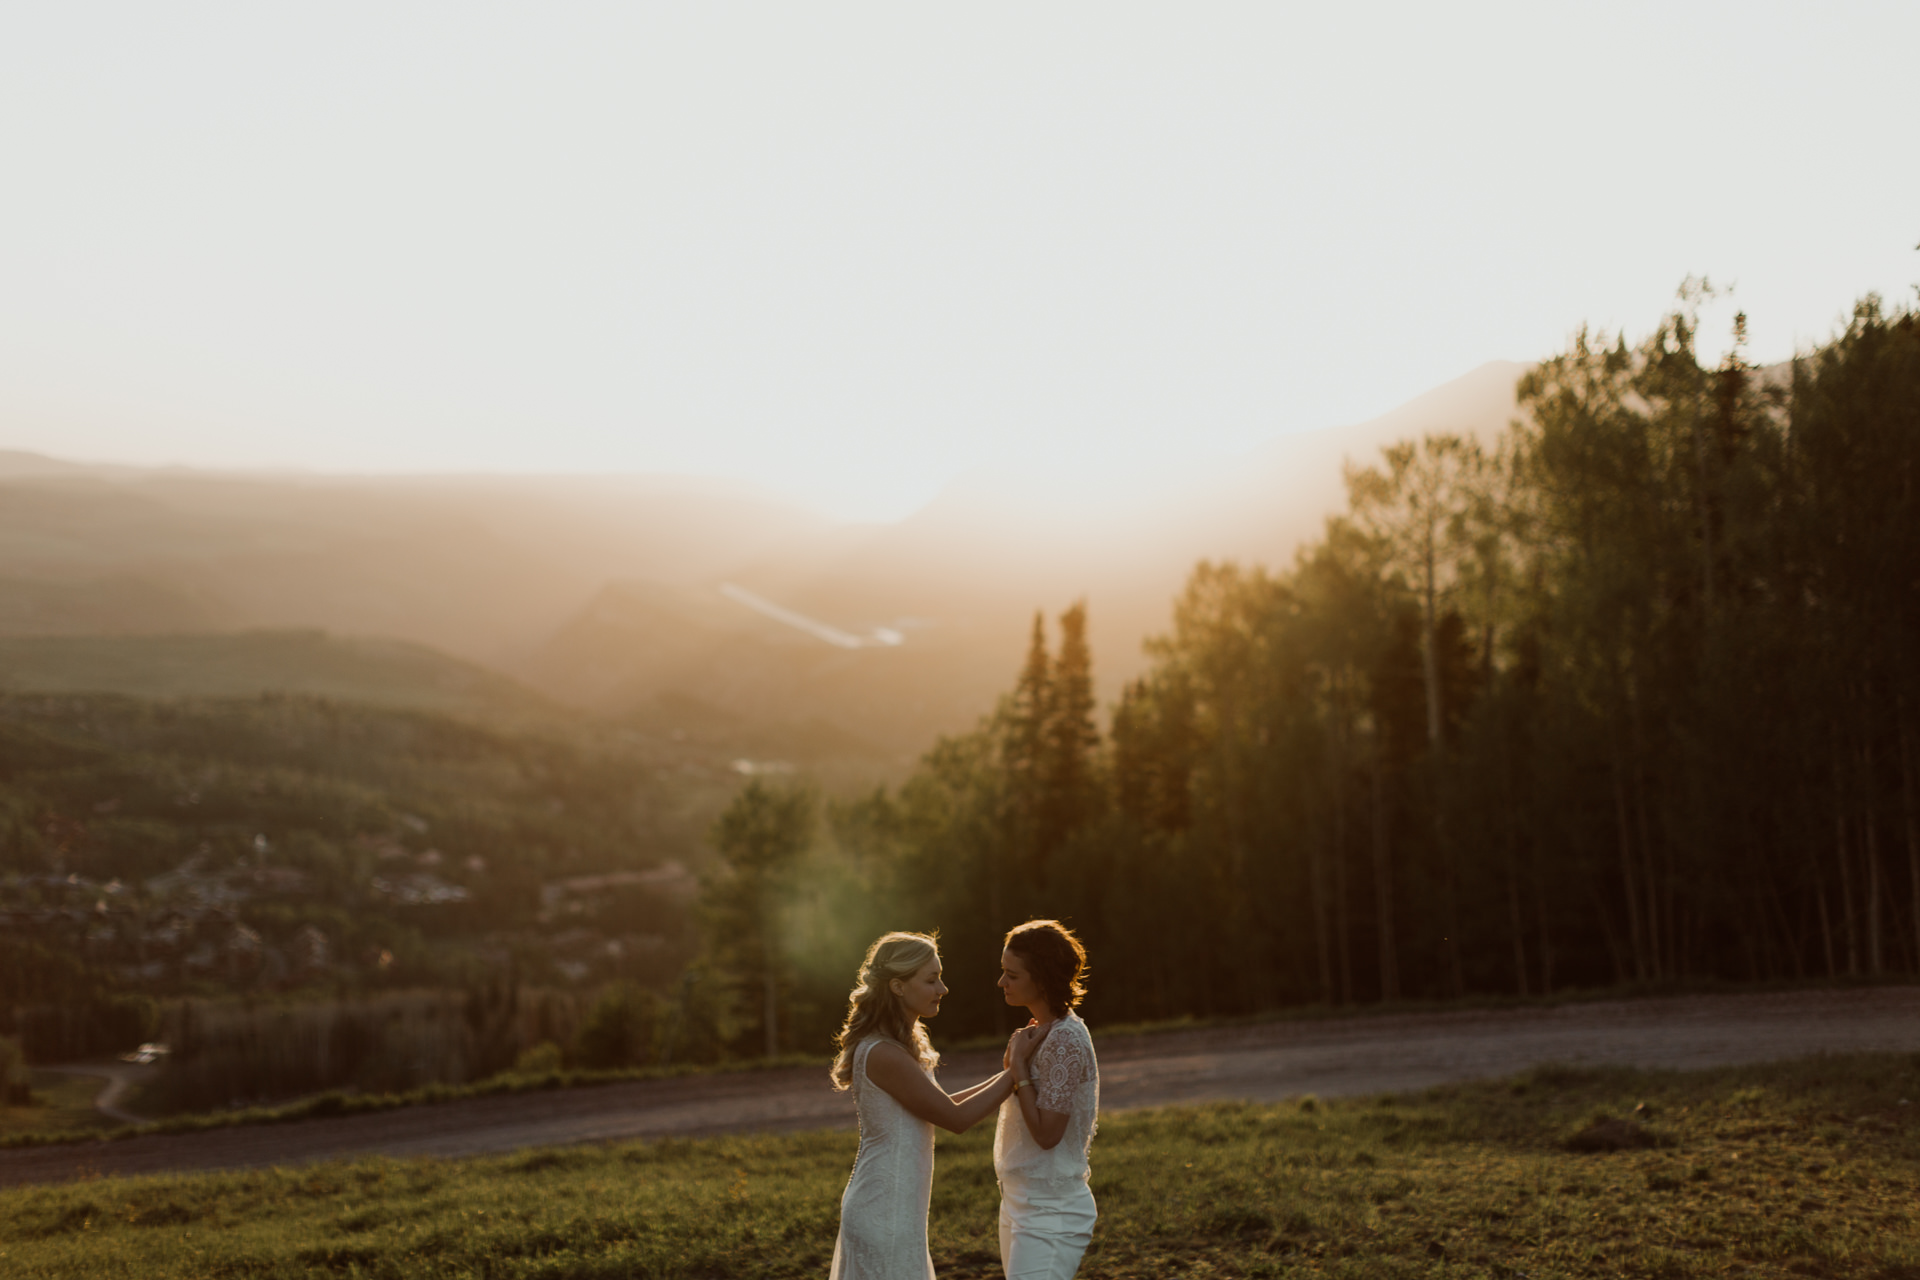 cedarandpines-intimate-san-sofia-telluride-colorado-wedding-48.jpg